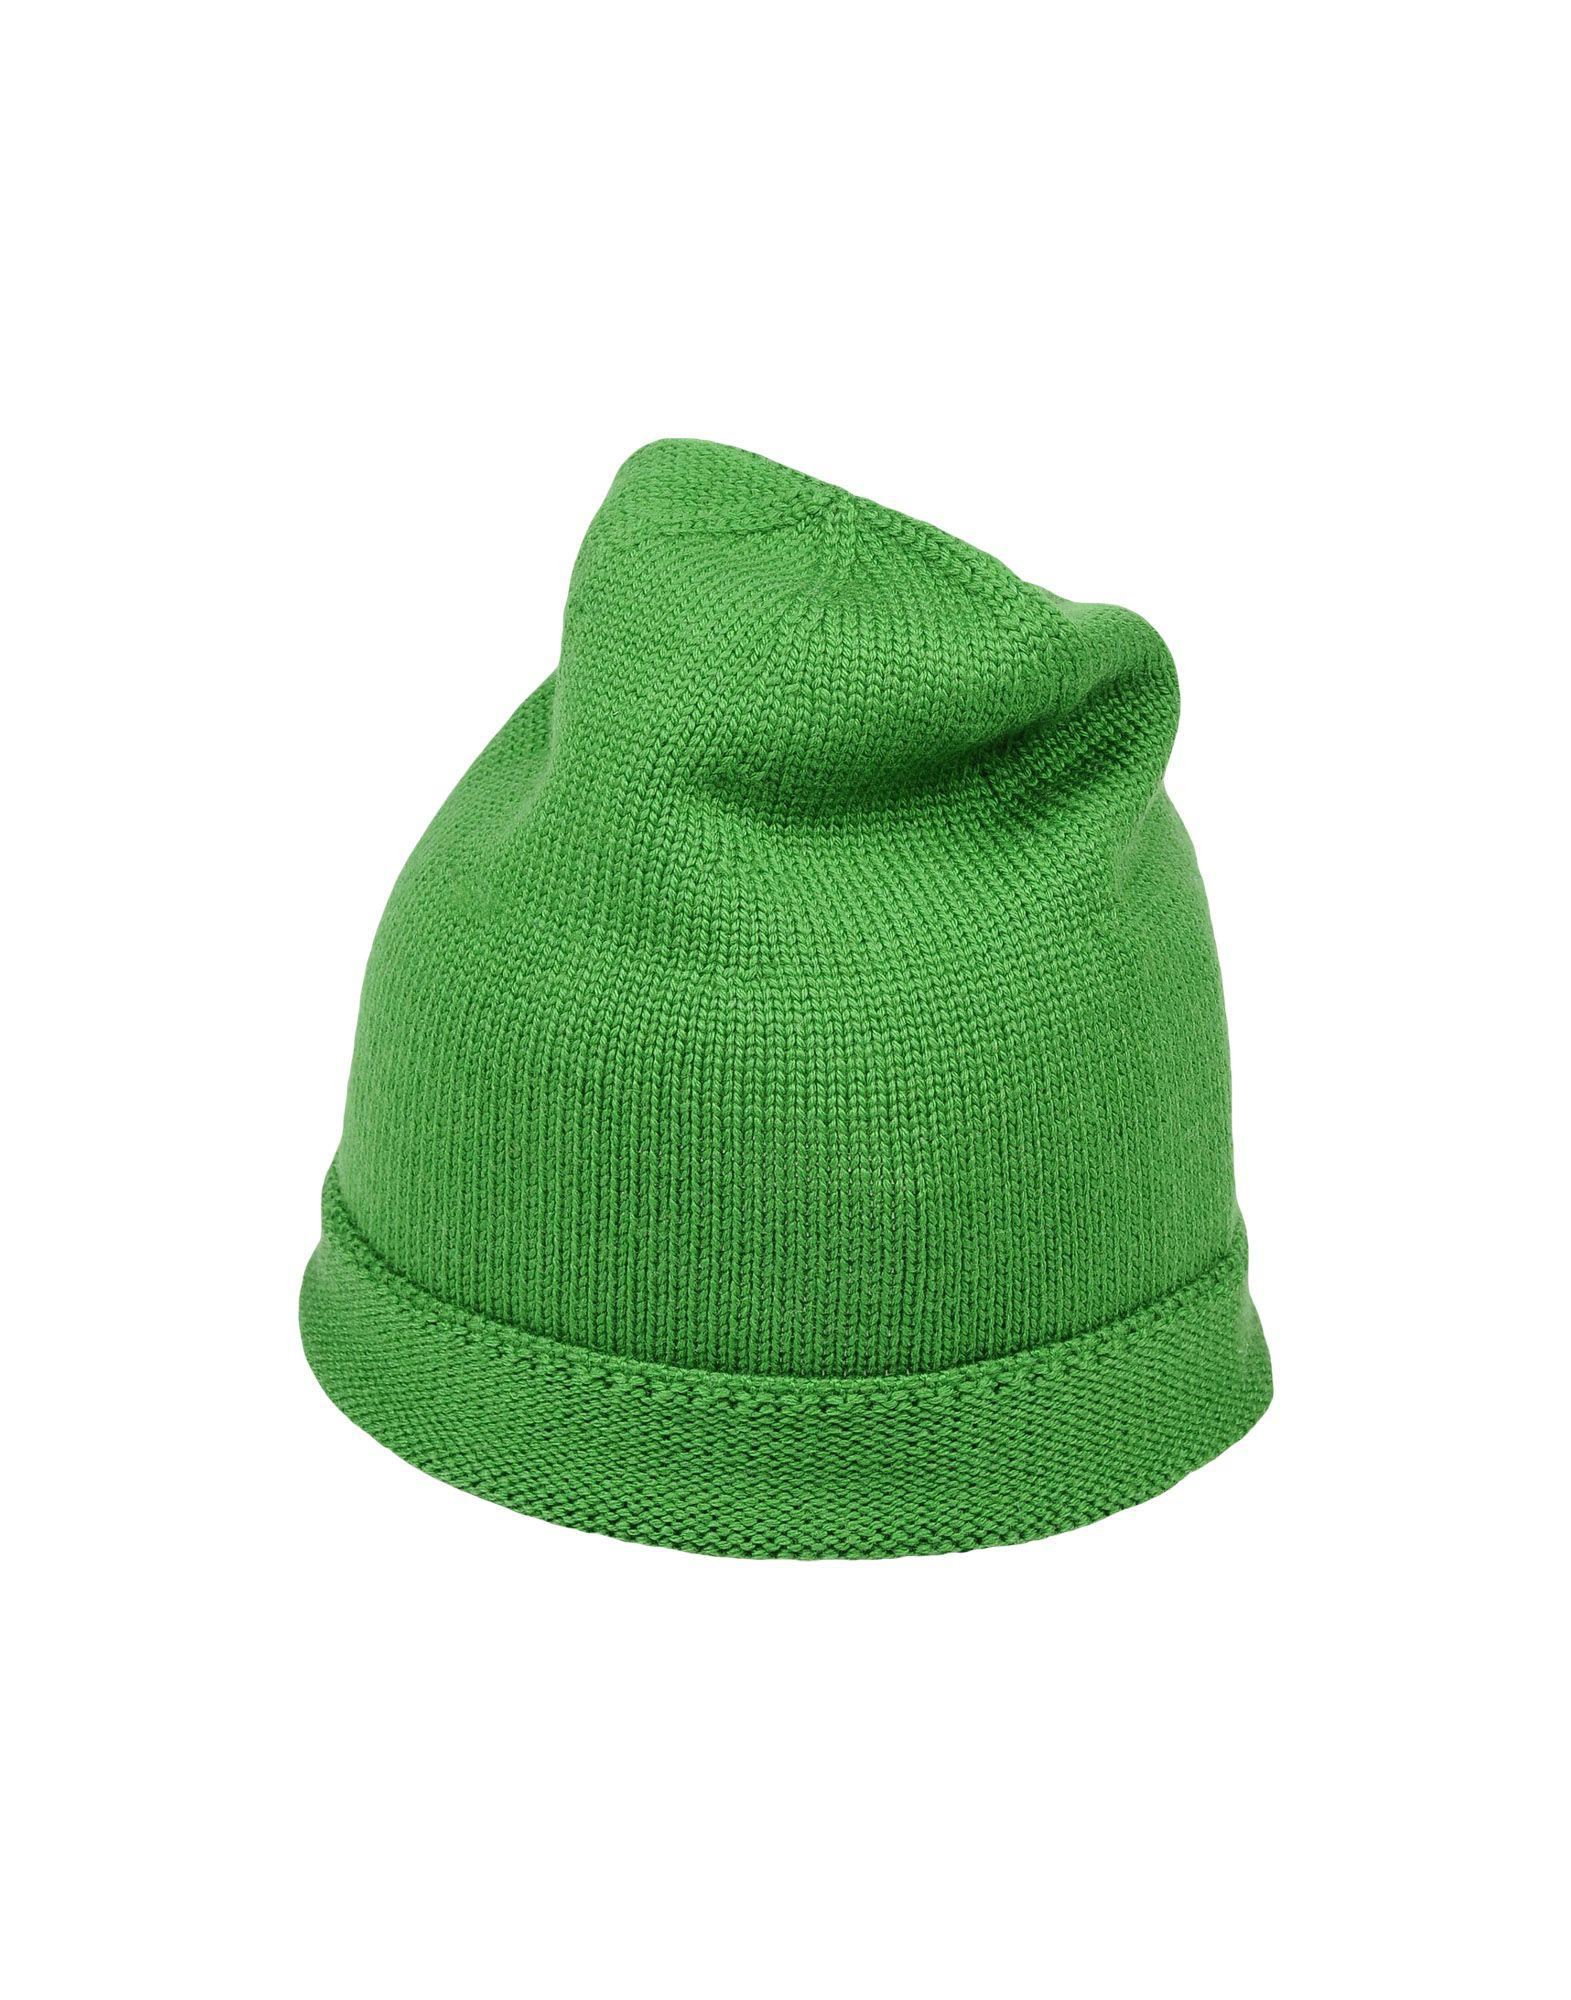 Gucci Hat in Green for Men - Lyst 7dad33c4dff